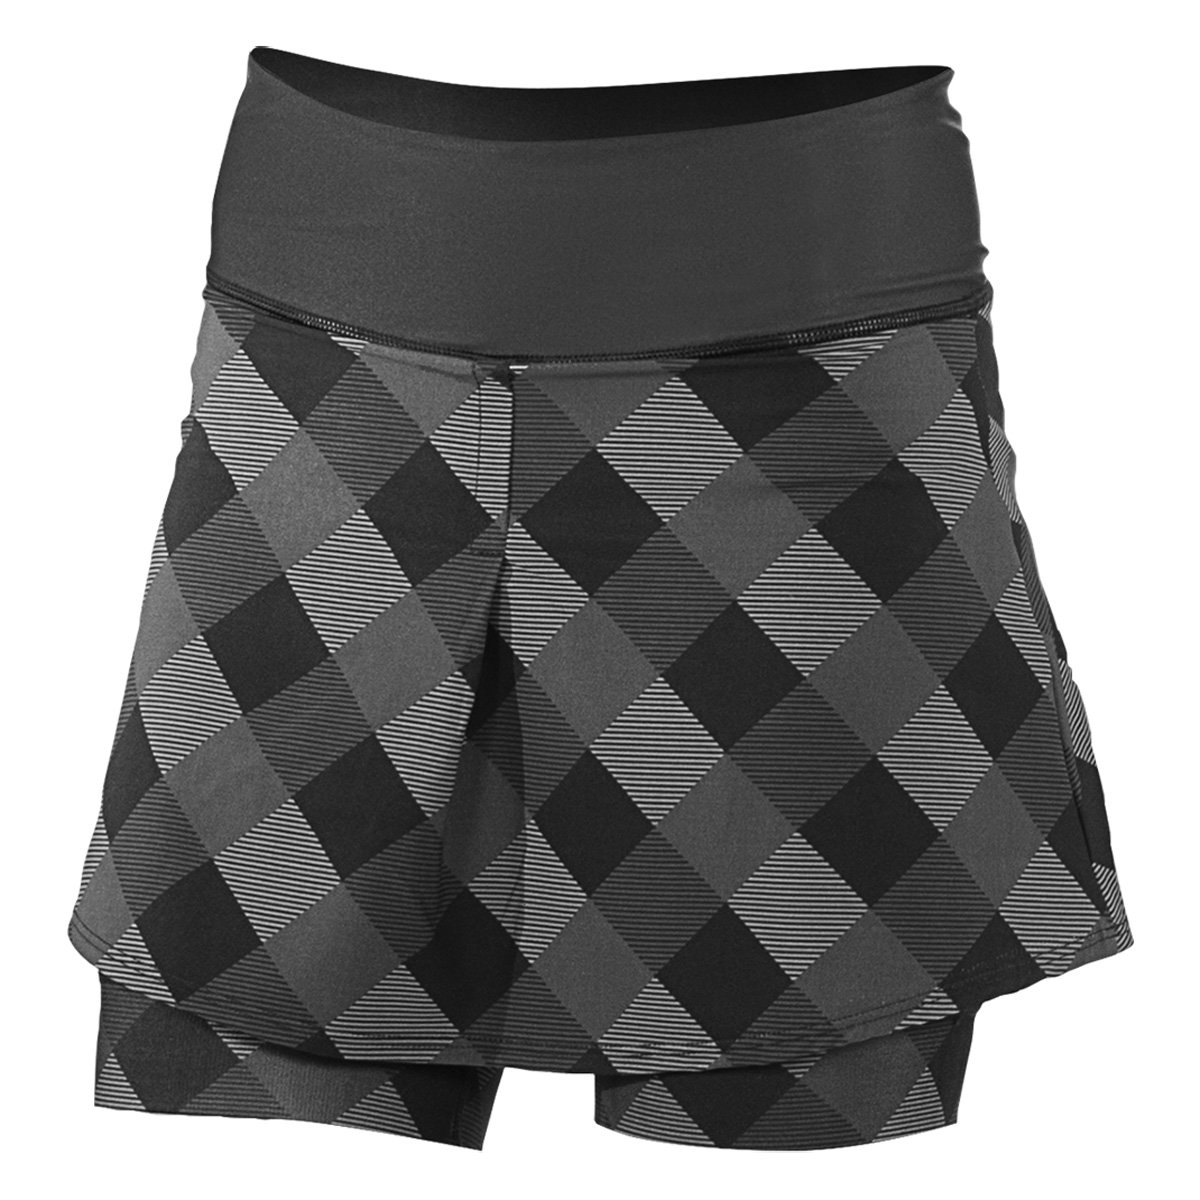 Shebeest Fender Skort in Gingham Style Print with Mountain Bike Pad (large)